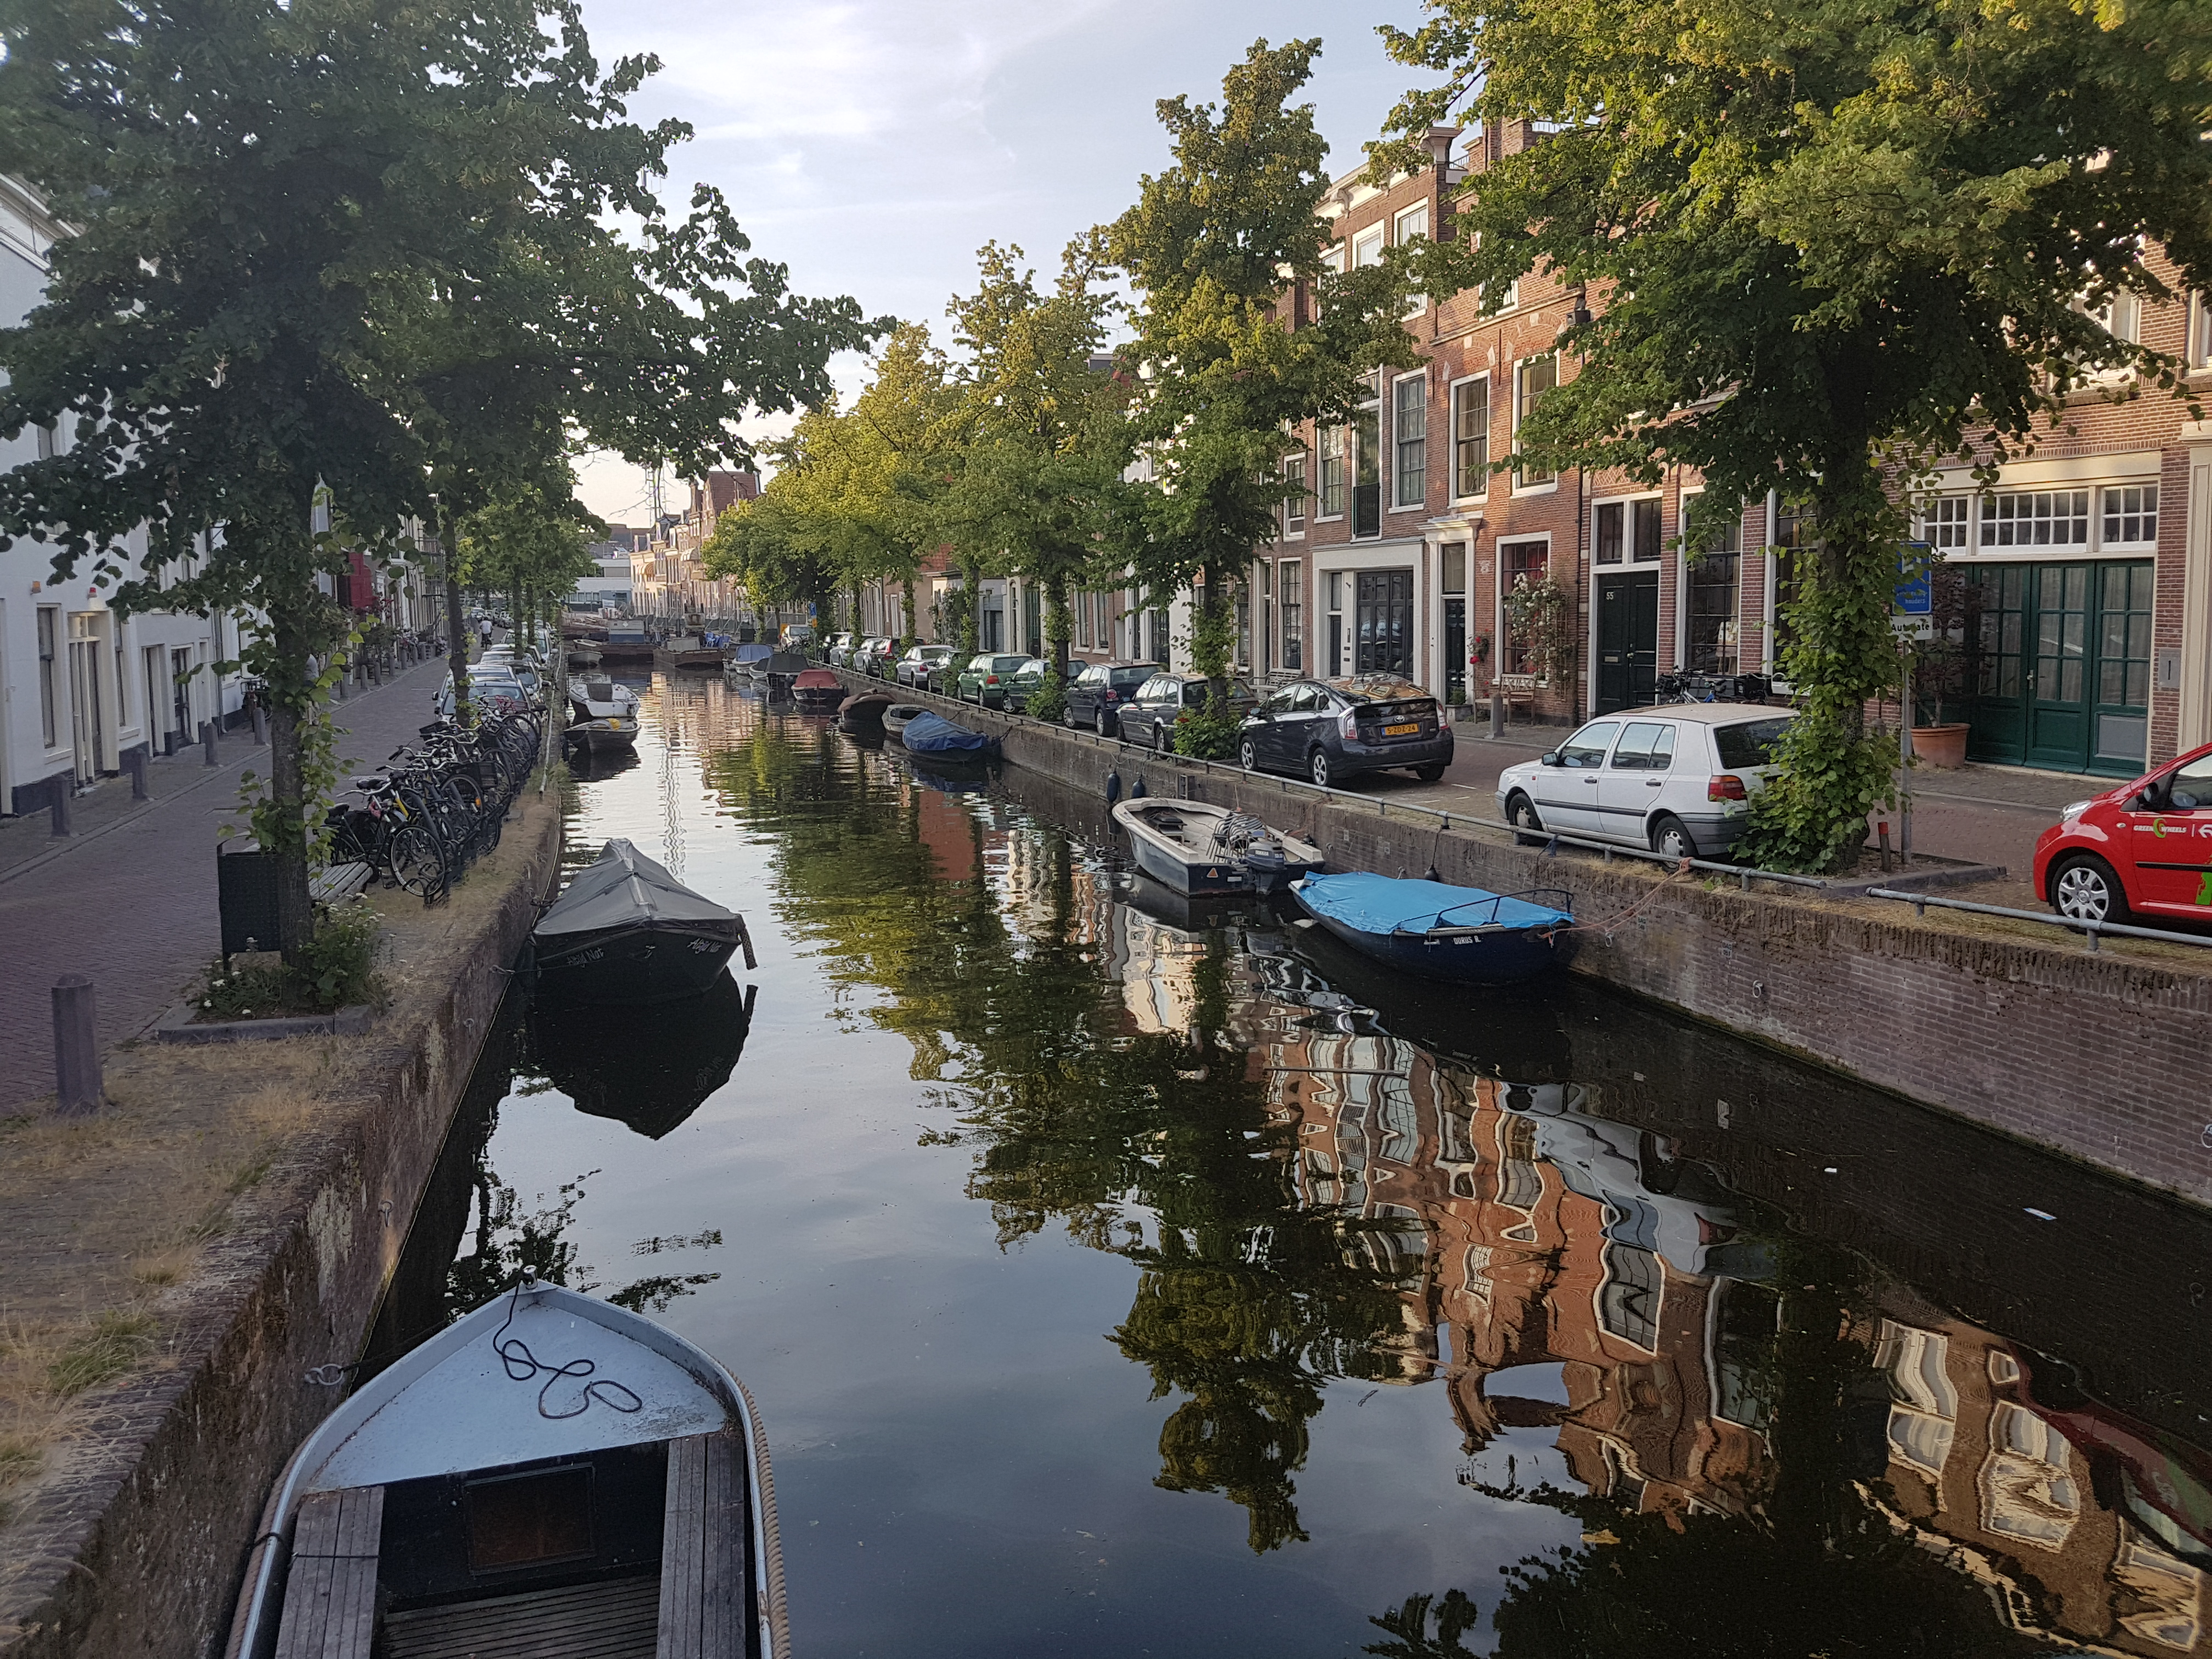 The peaceful canals of Haarlem